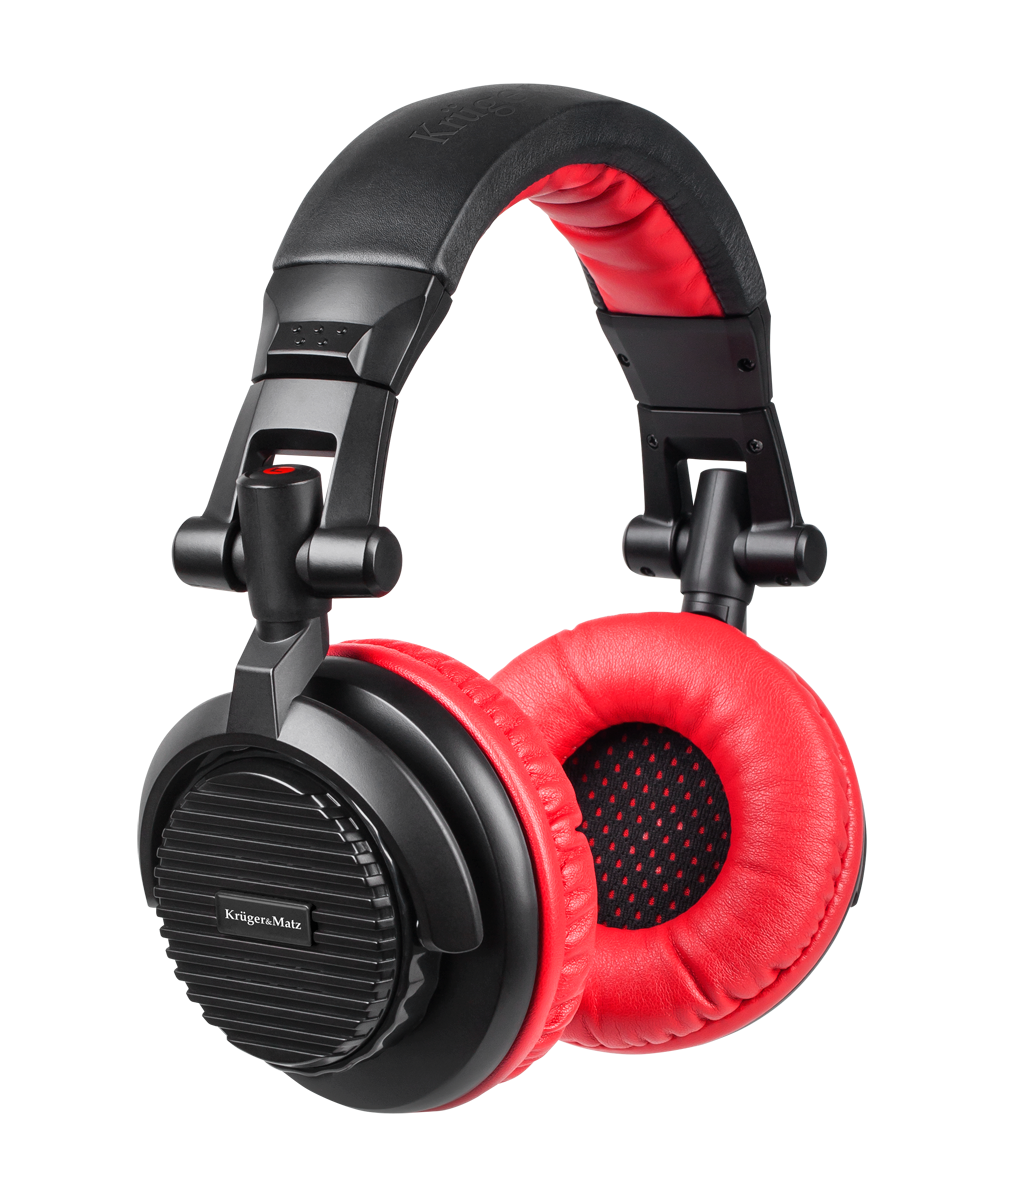 Dj headphone png. Headphones kruger matz kmdjpng